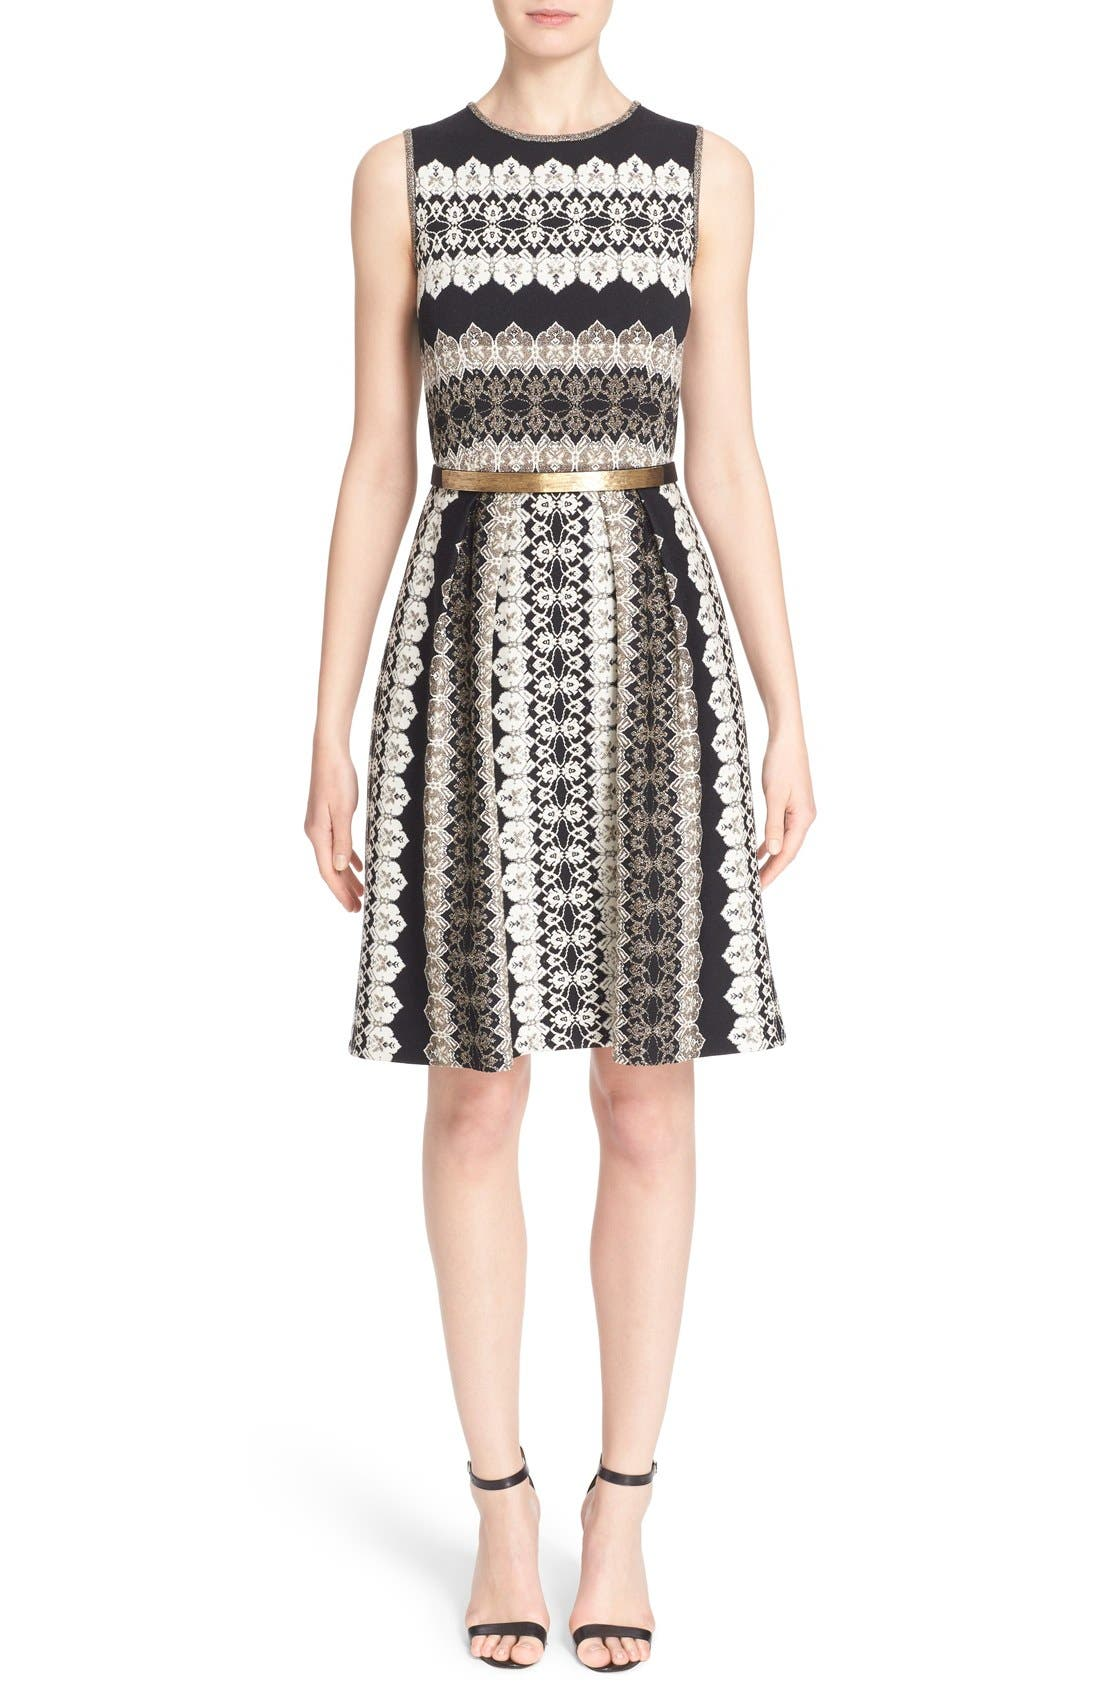 Main Image - St. John Collection Jeweled Shimmer Knit Dress